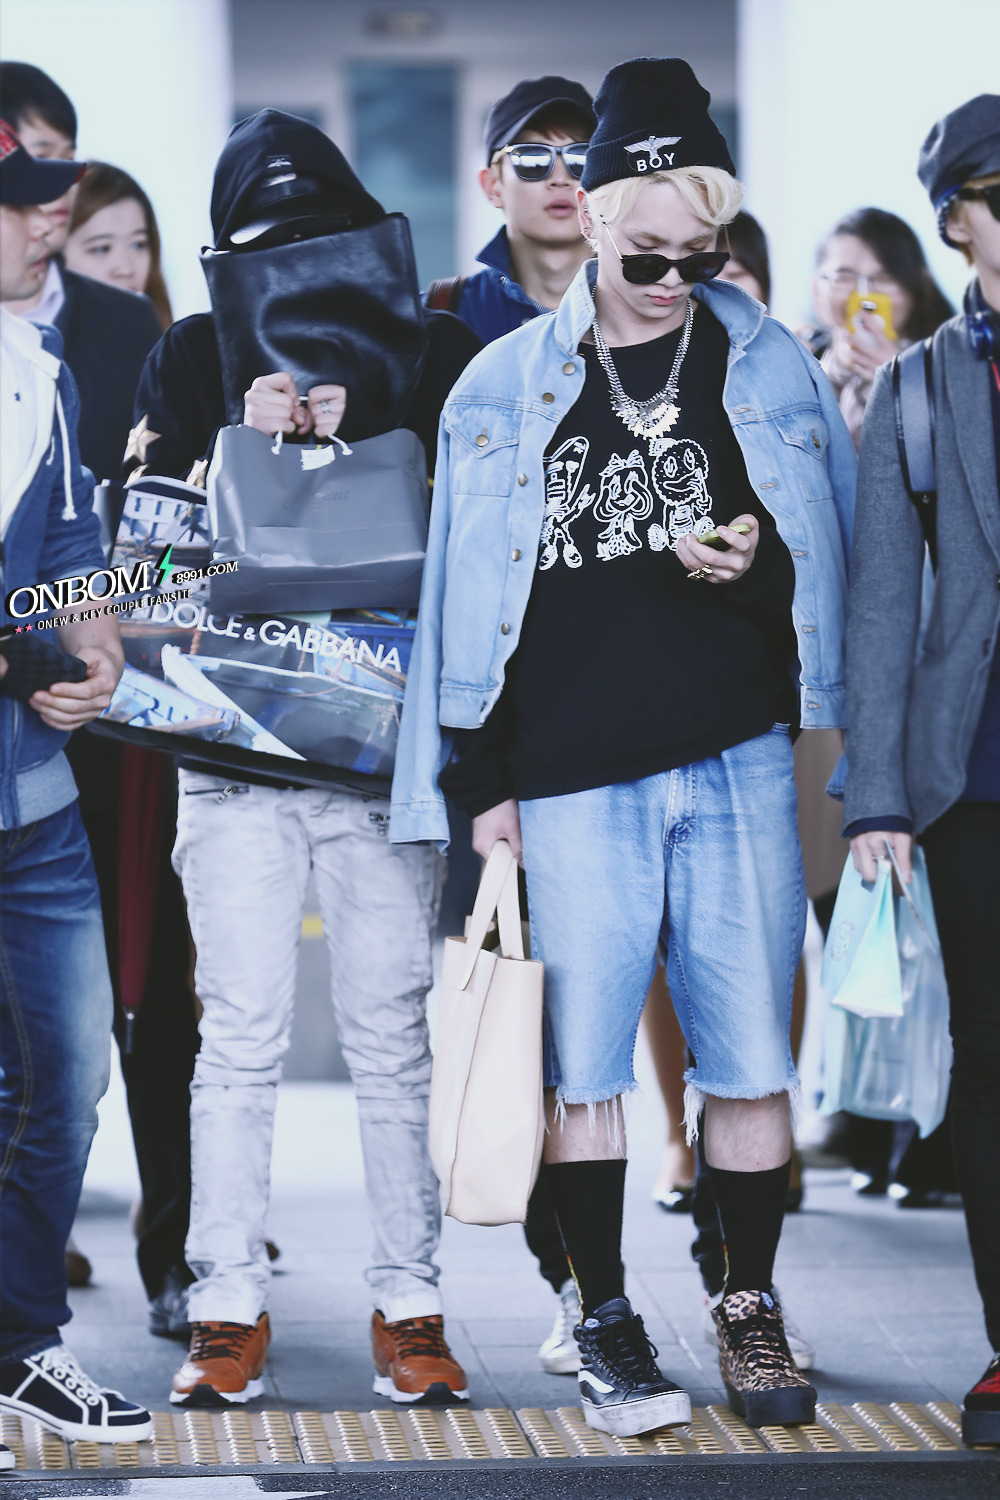 onew was covering his face. look, he brought so many gift lol